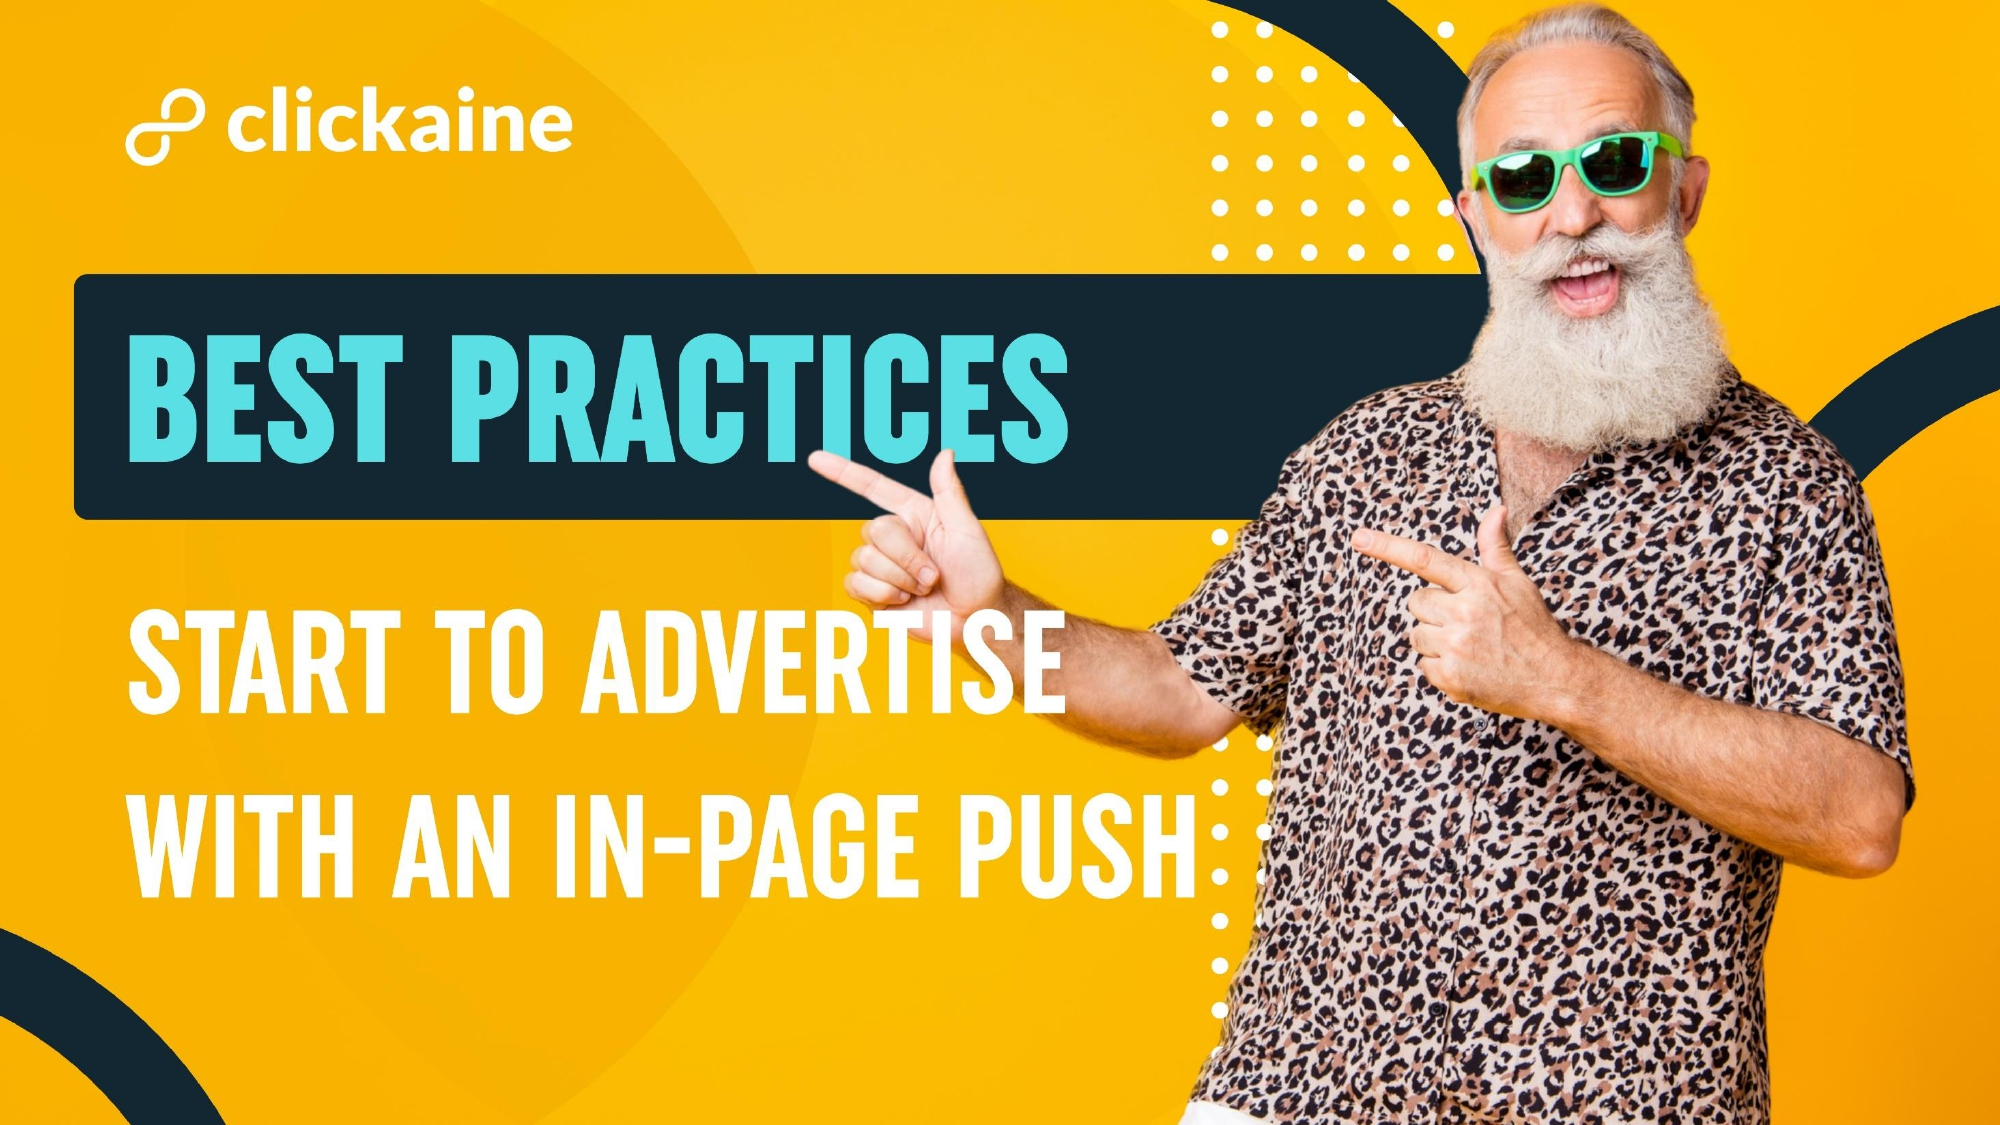 Start to advertise with an In-Page Push. Best practices.